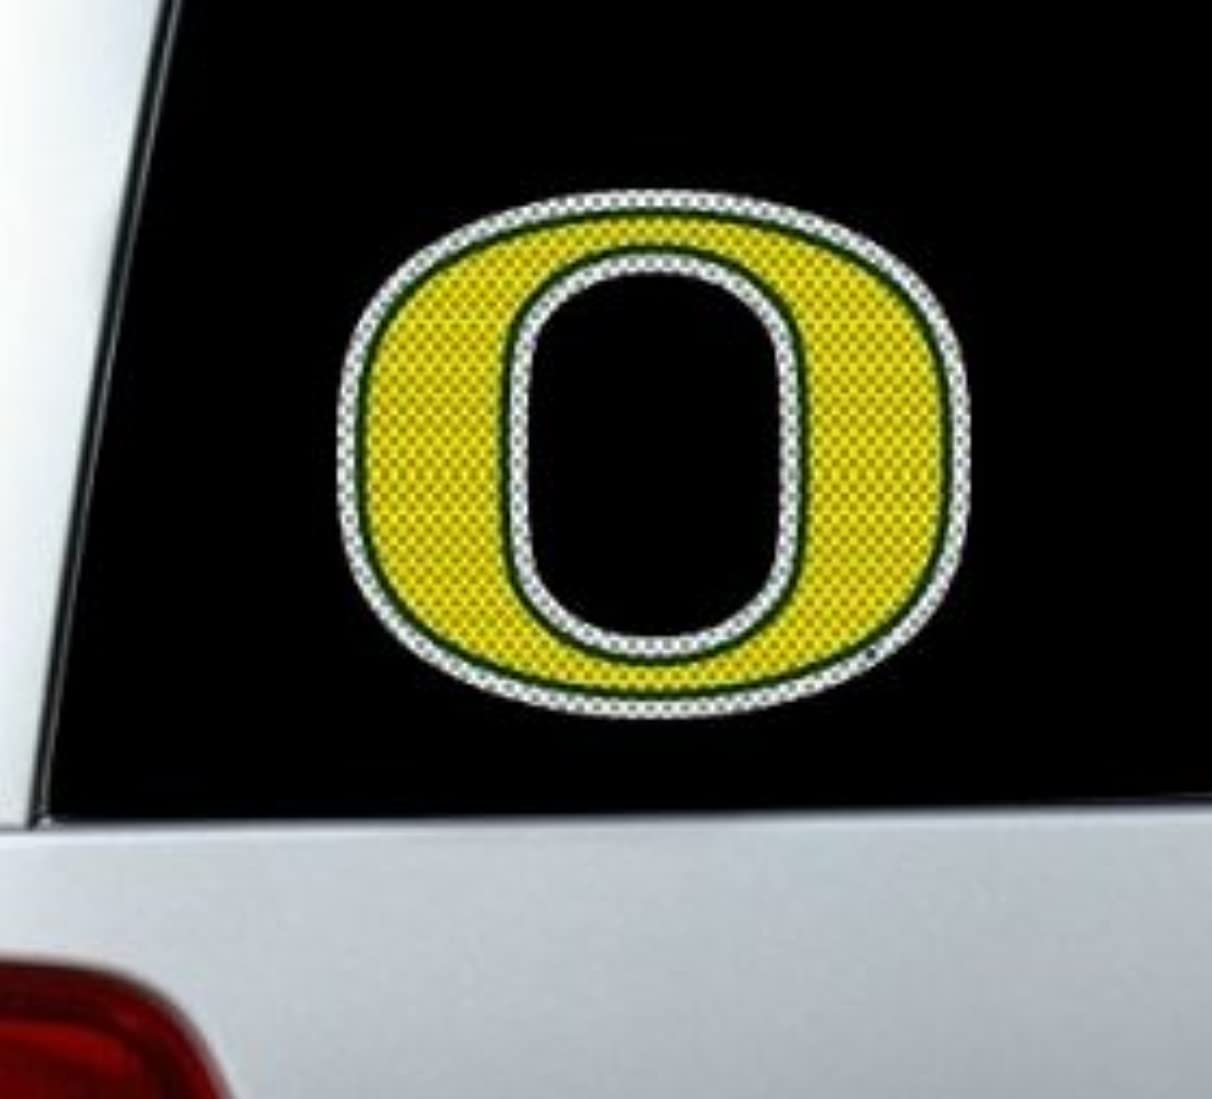 Oregon Ducks Die-Cut Window Film - Large